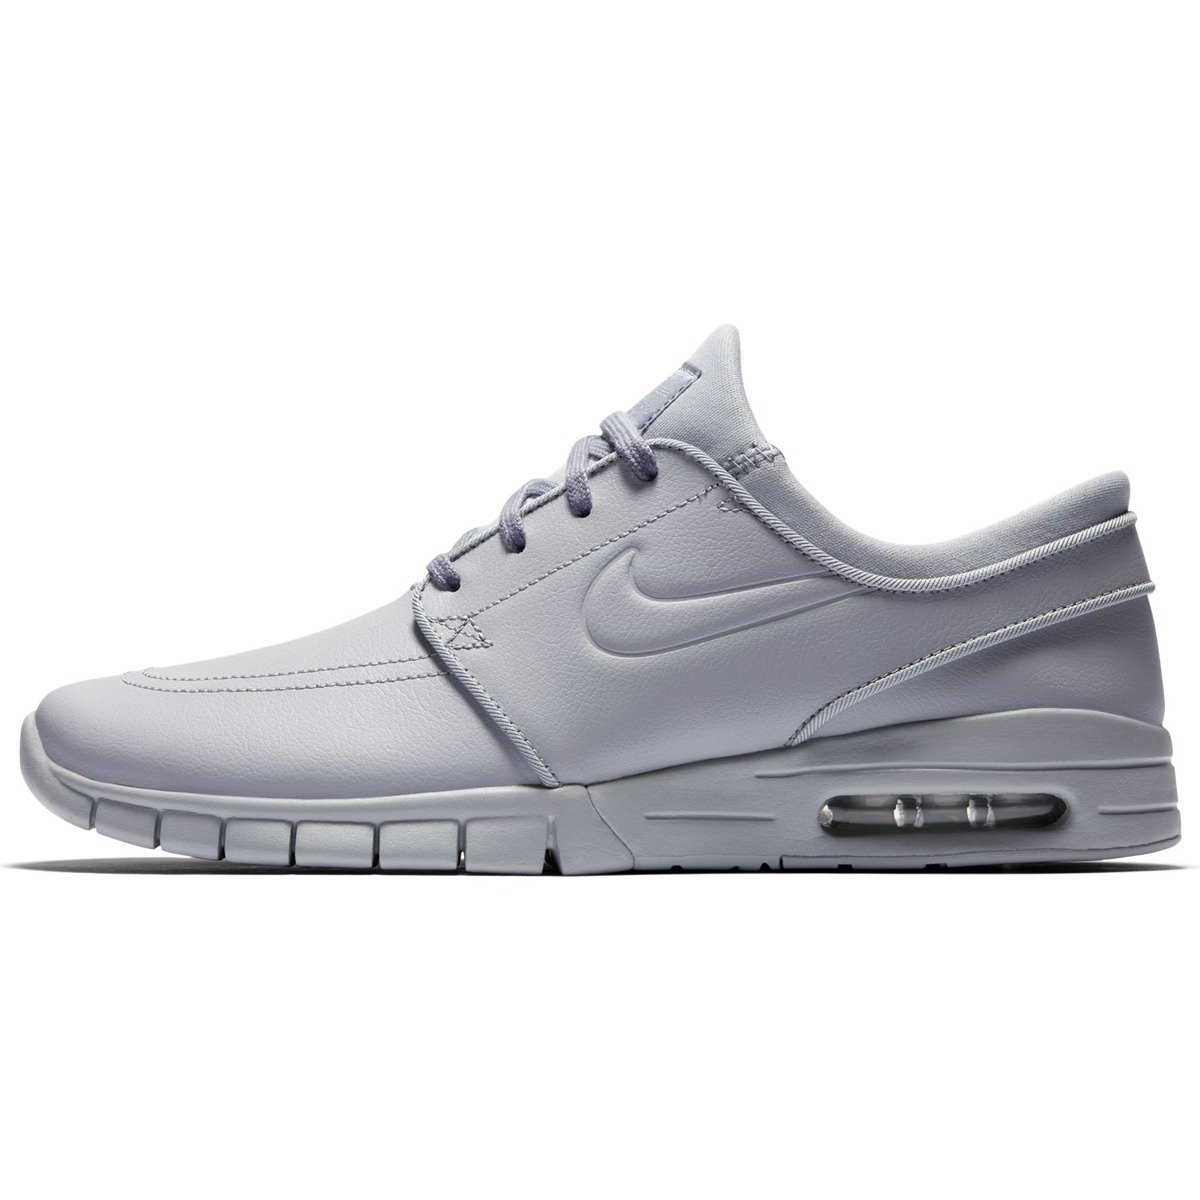 pretty nice 4d399 09282 Click to zoom  shoes nike stefan janoski max l skateboarding shoe wolf grey wolf  grey-mtlc pewter